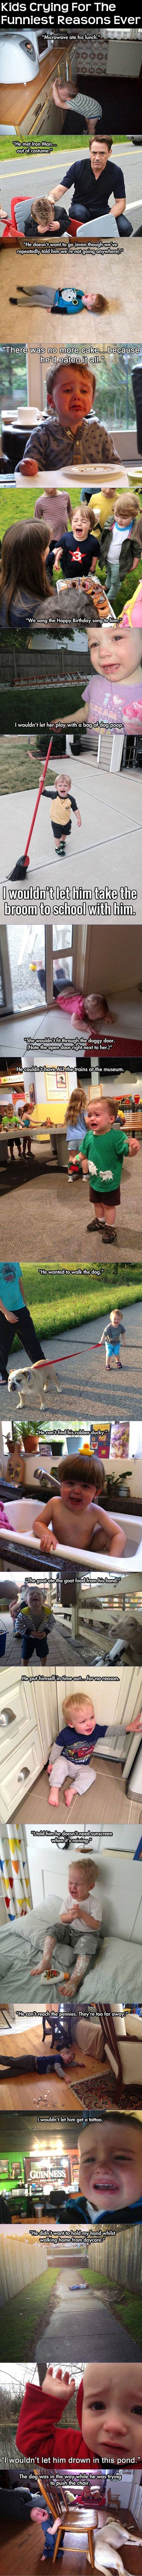 Kids Crying For The Funniest Reasons Ever funny kids parents lol children humor funny pictures funny kids hysterical funny images why my kid is crying: